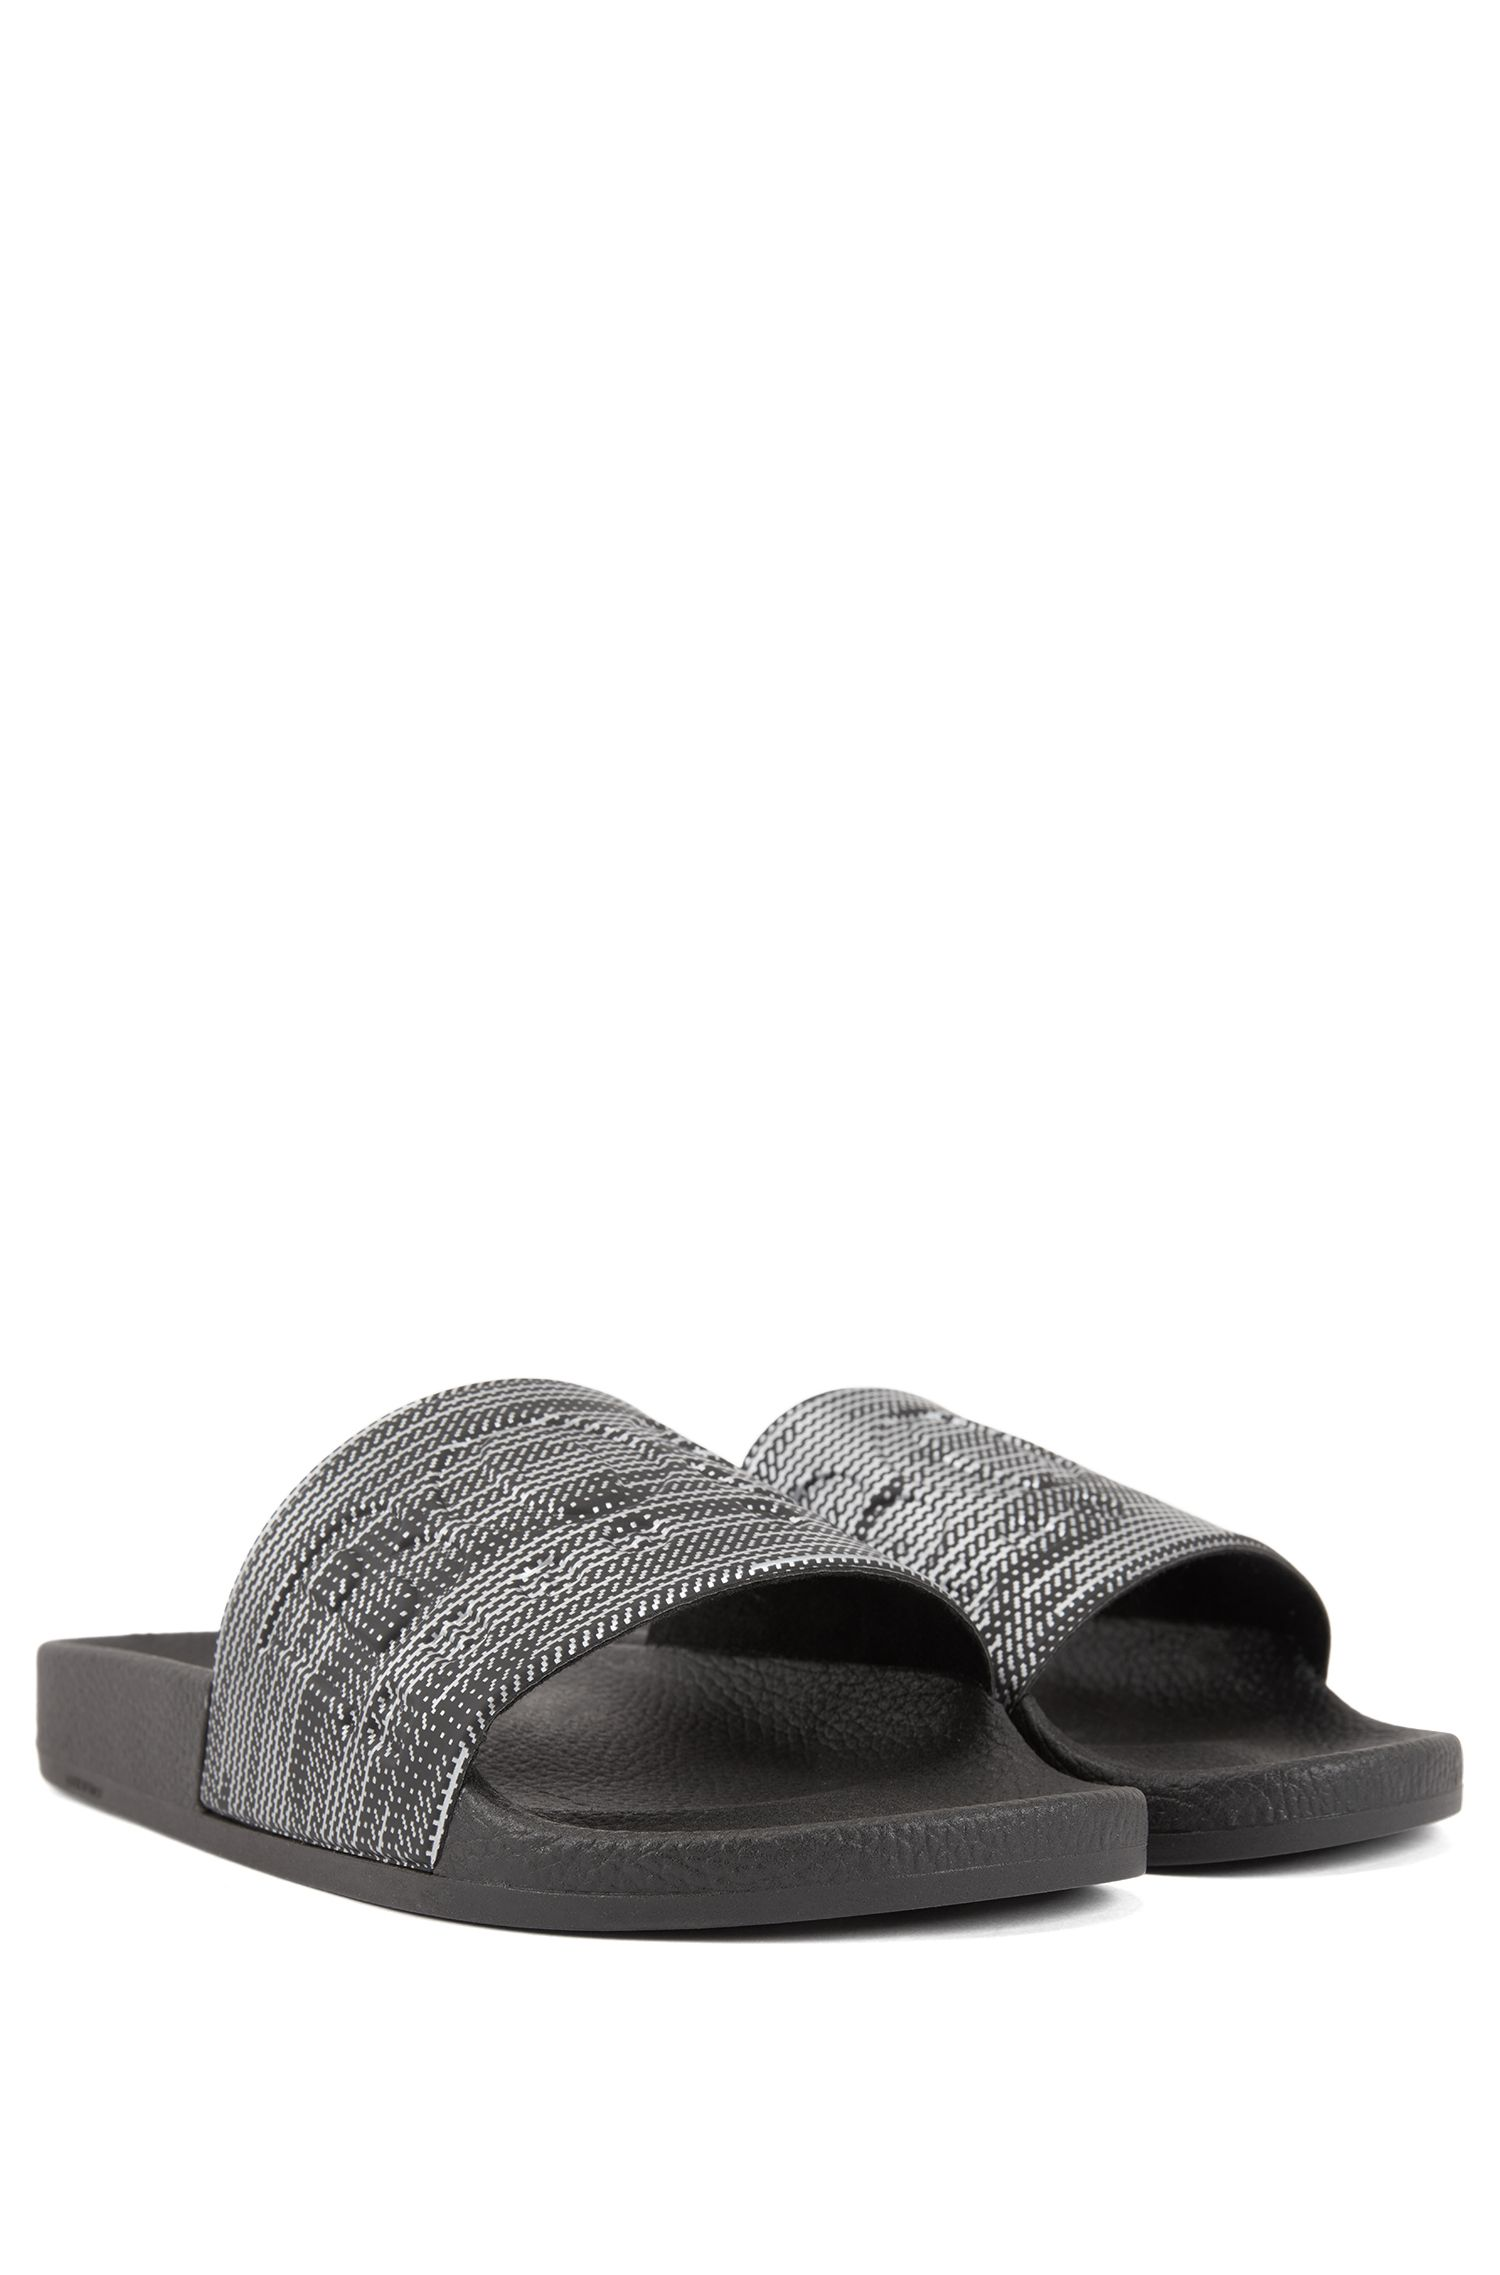 Italian-made rubber slide sandals with contrast logo, Silver